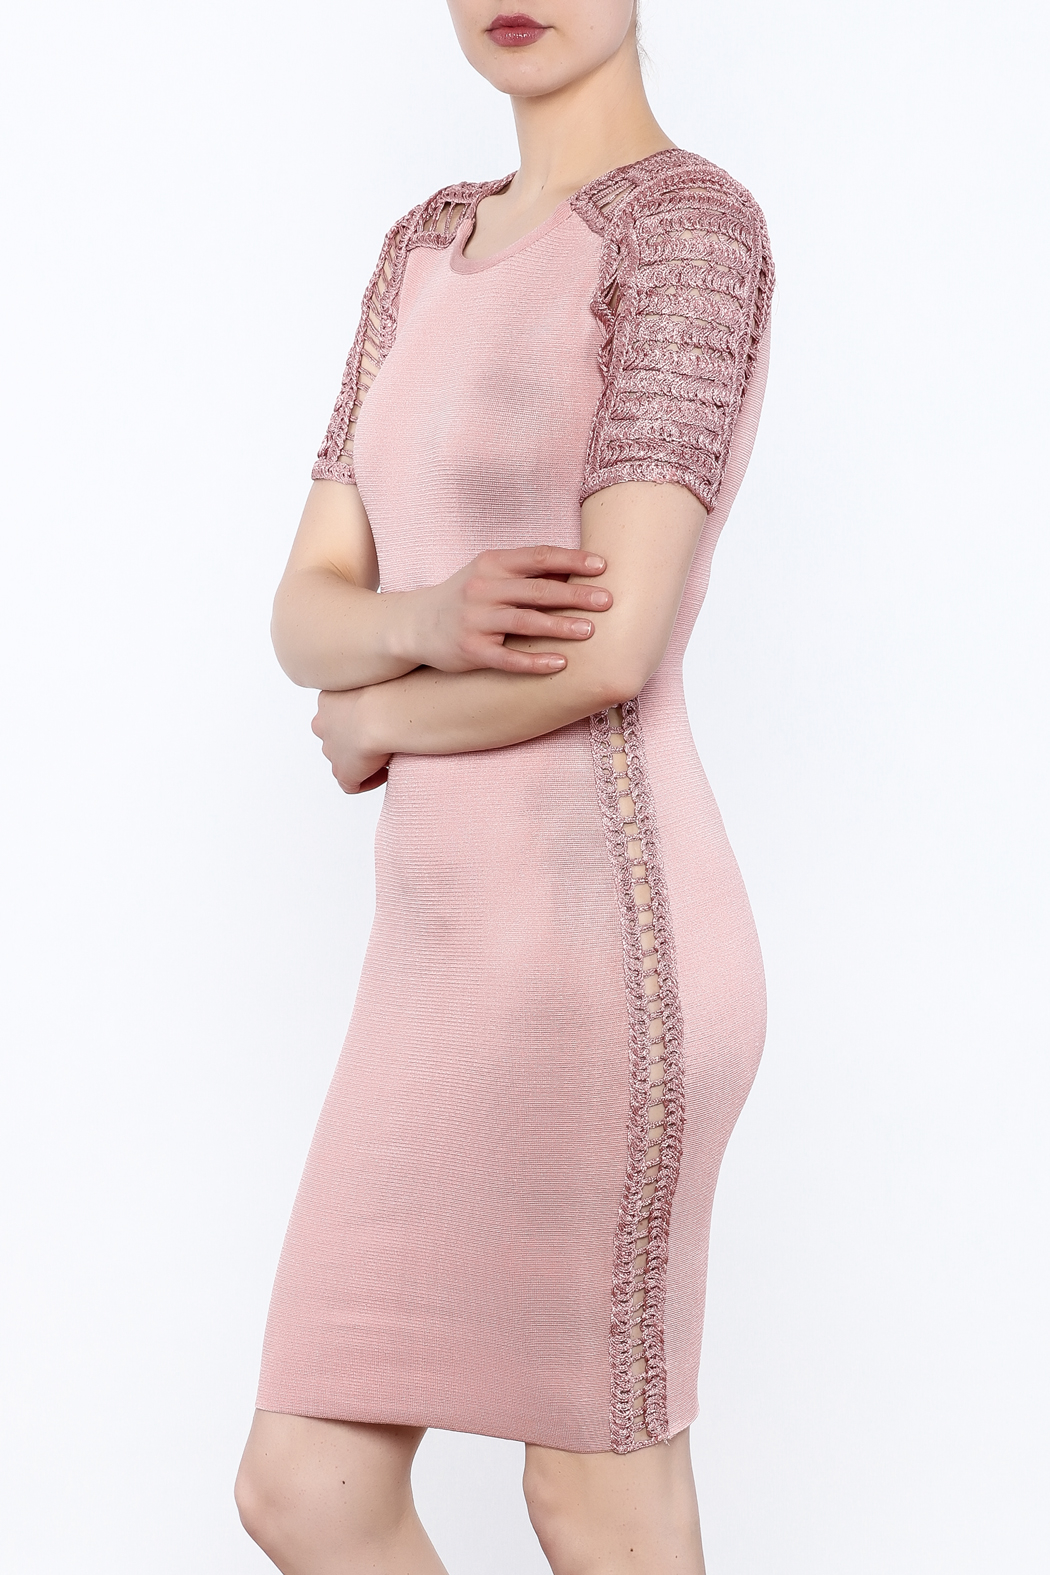 Heiress Boutique Pink Bandage Dress - Front Cropped Image